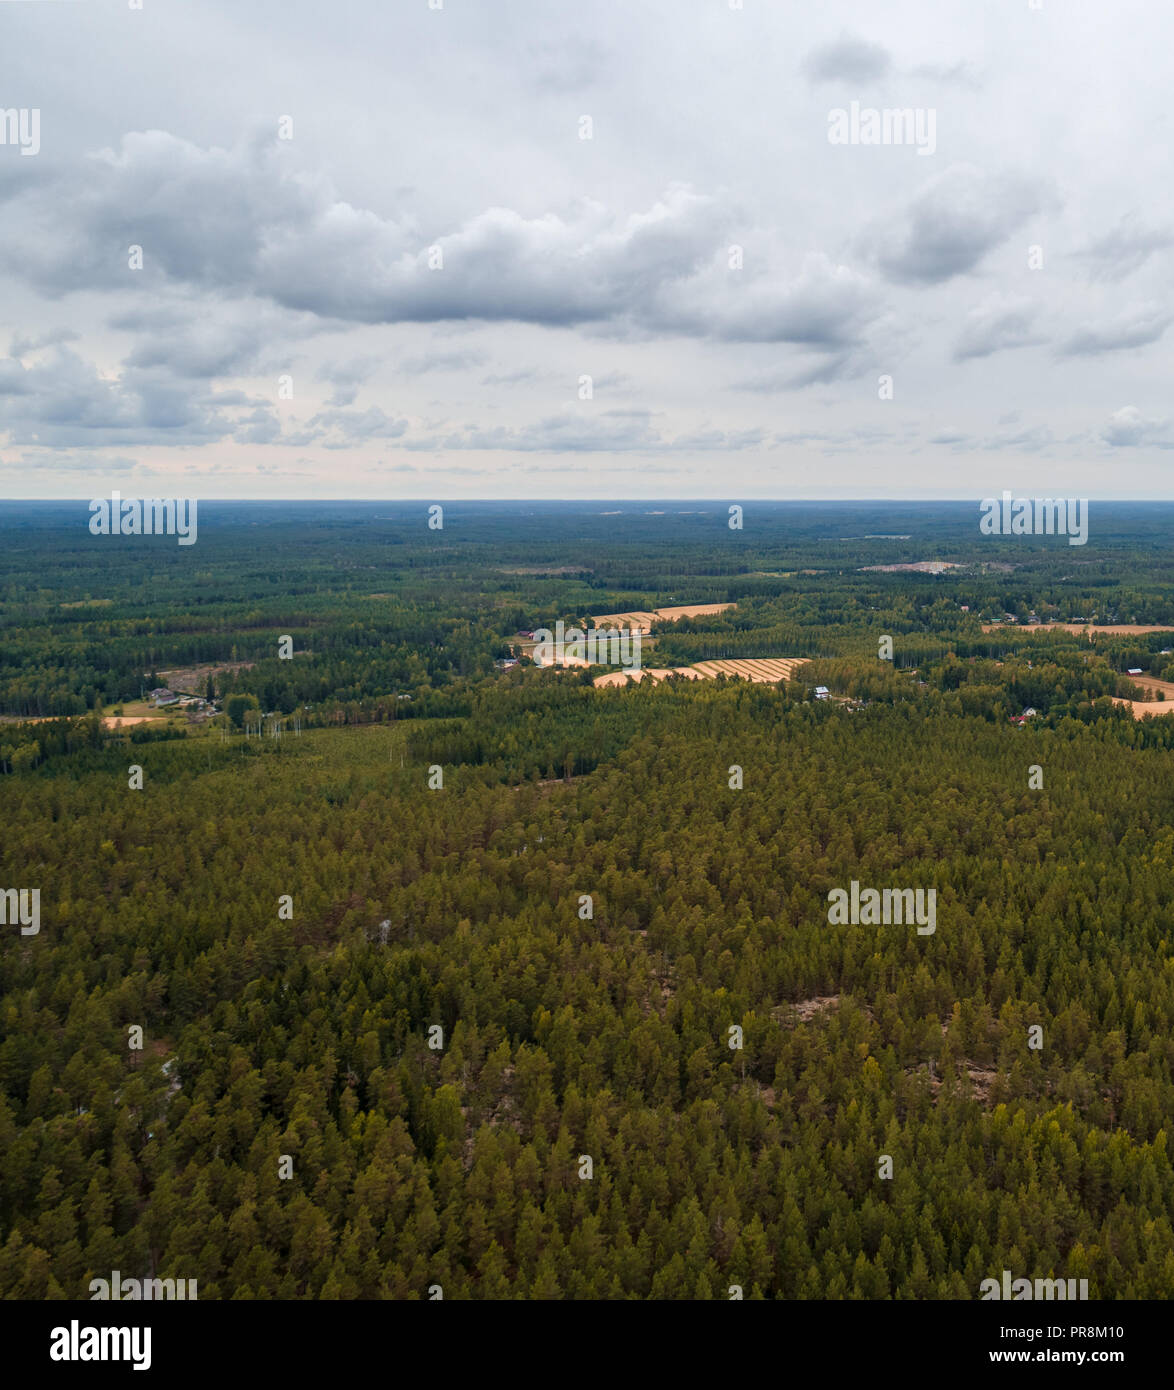 Aerial view from high altitude of the forest outside Tammisaari Finland on a day without sunshine - Stock Image